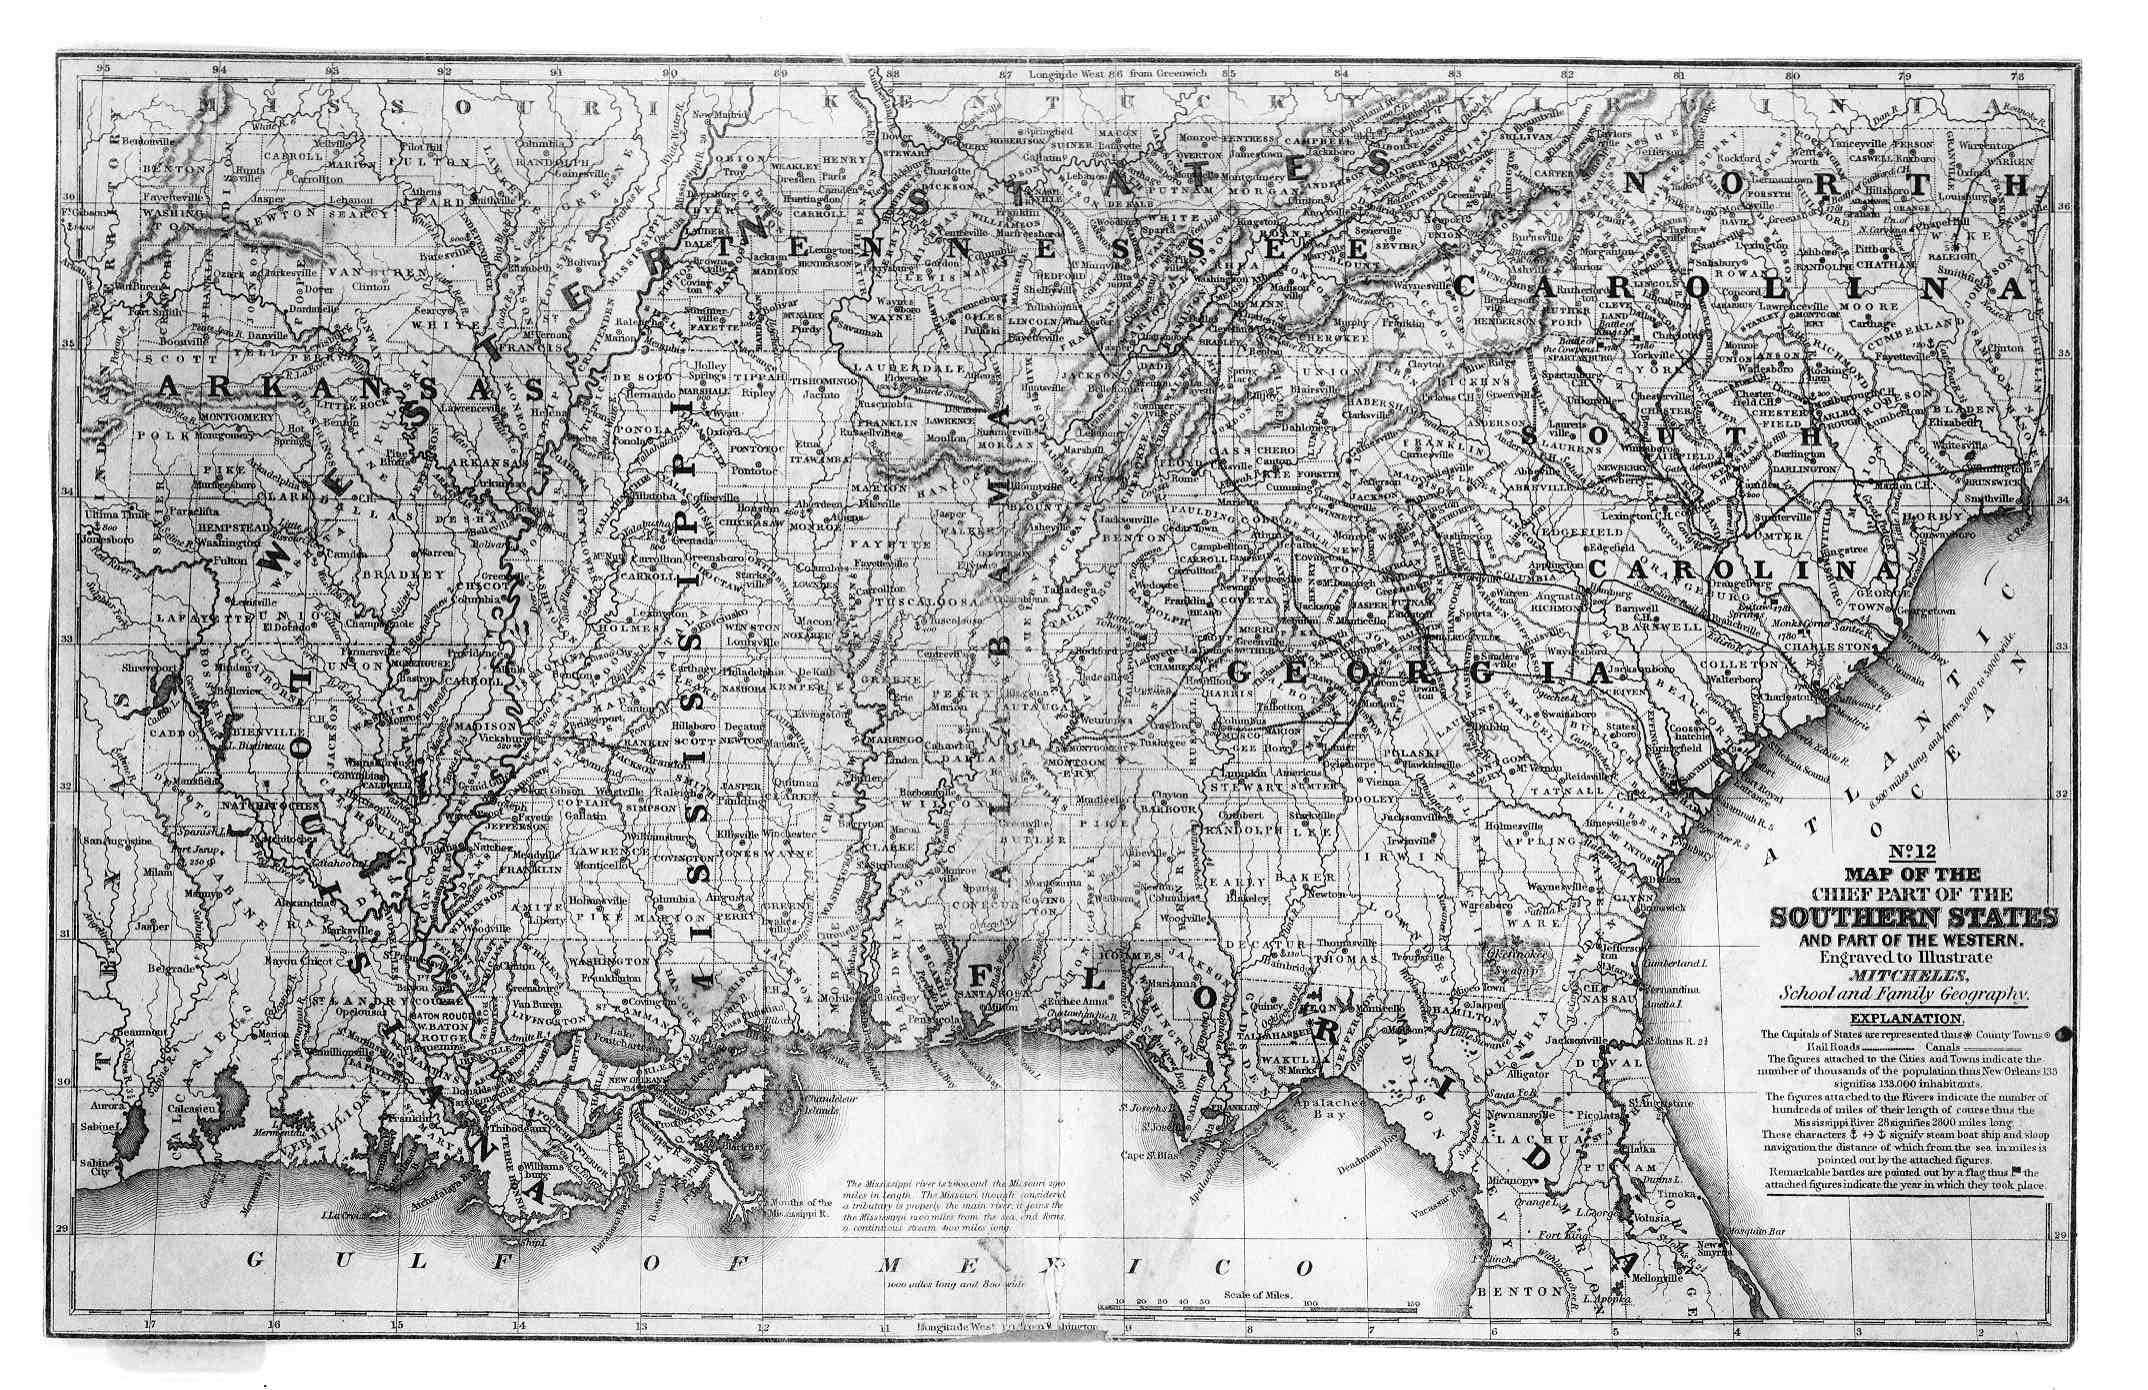 1839 Map Of The Chief Part Of The Southern States And Part Of The Western